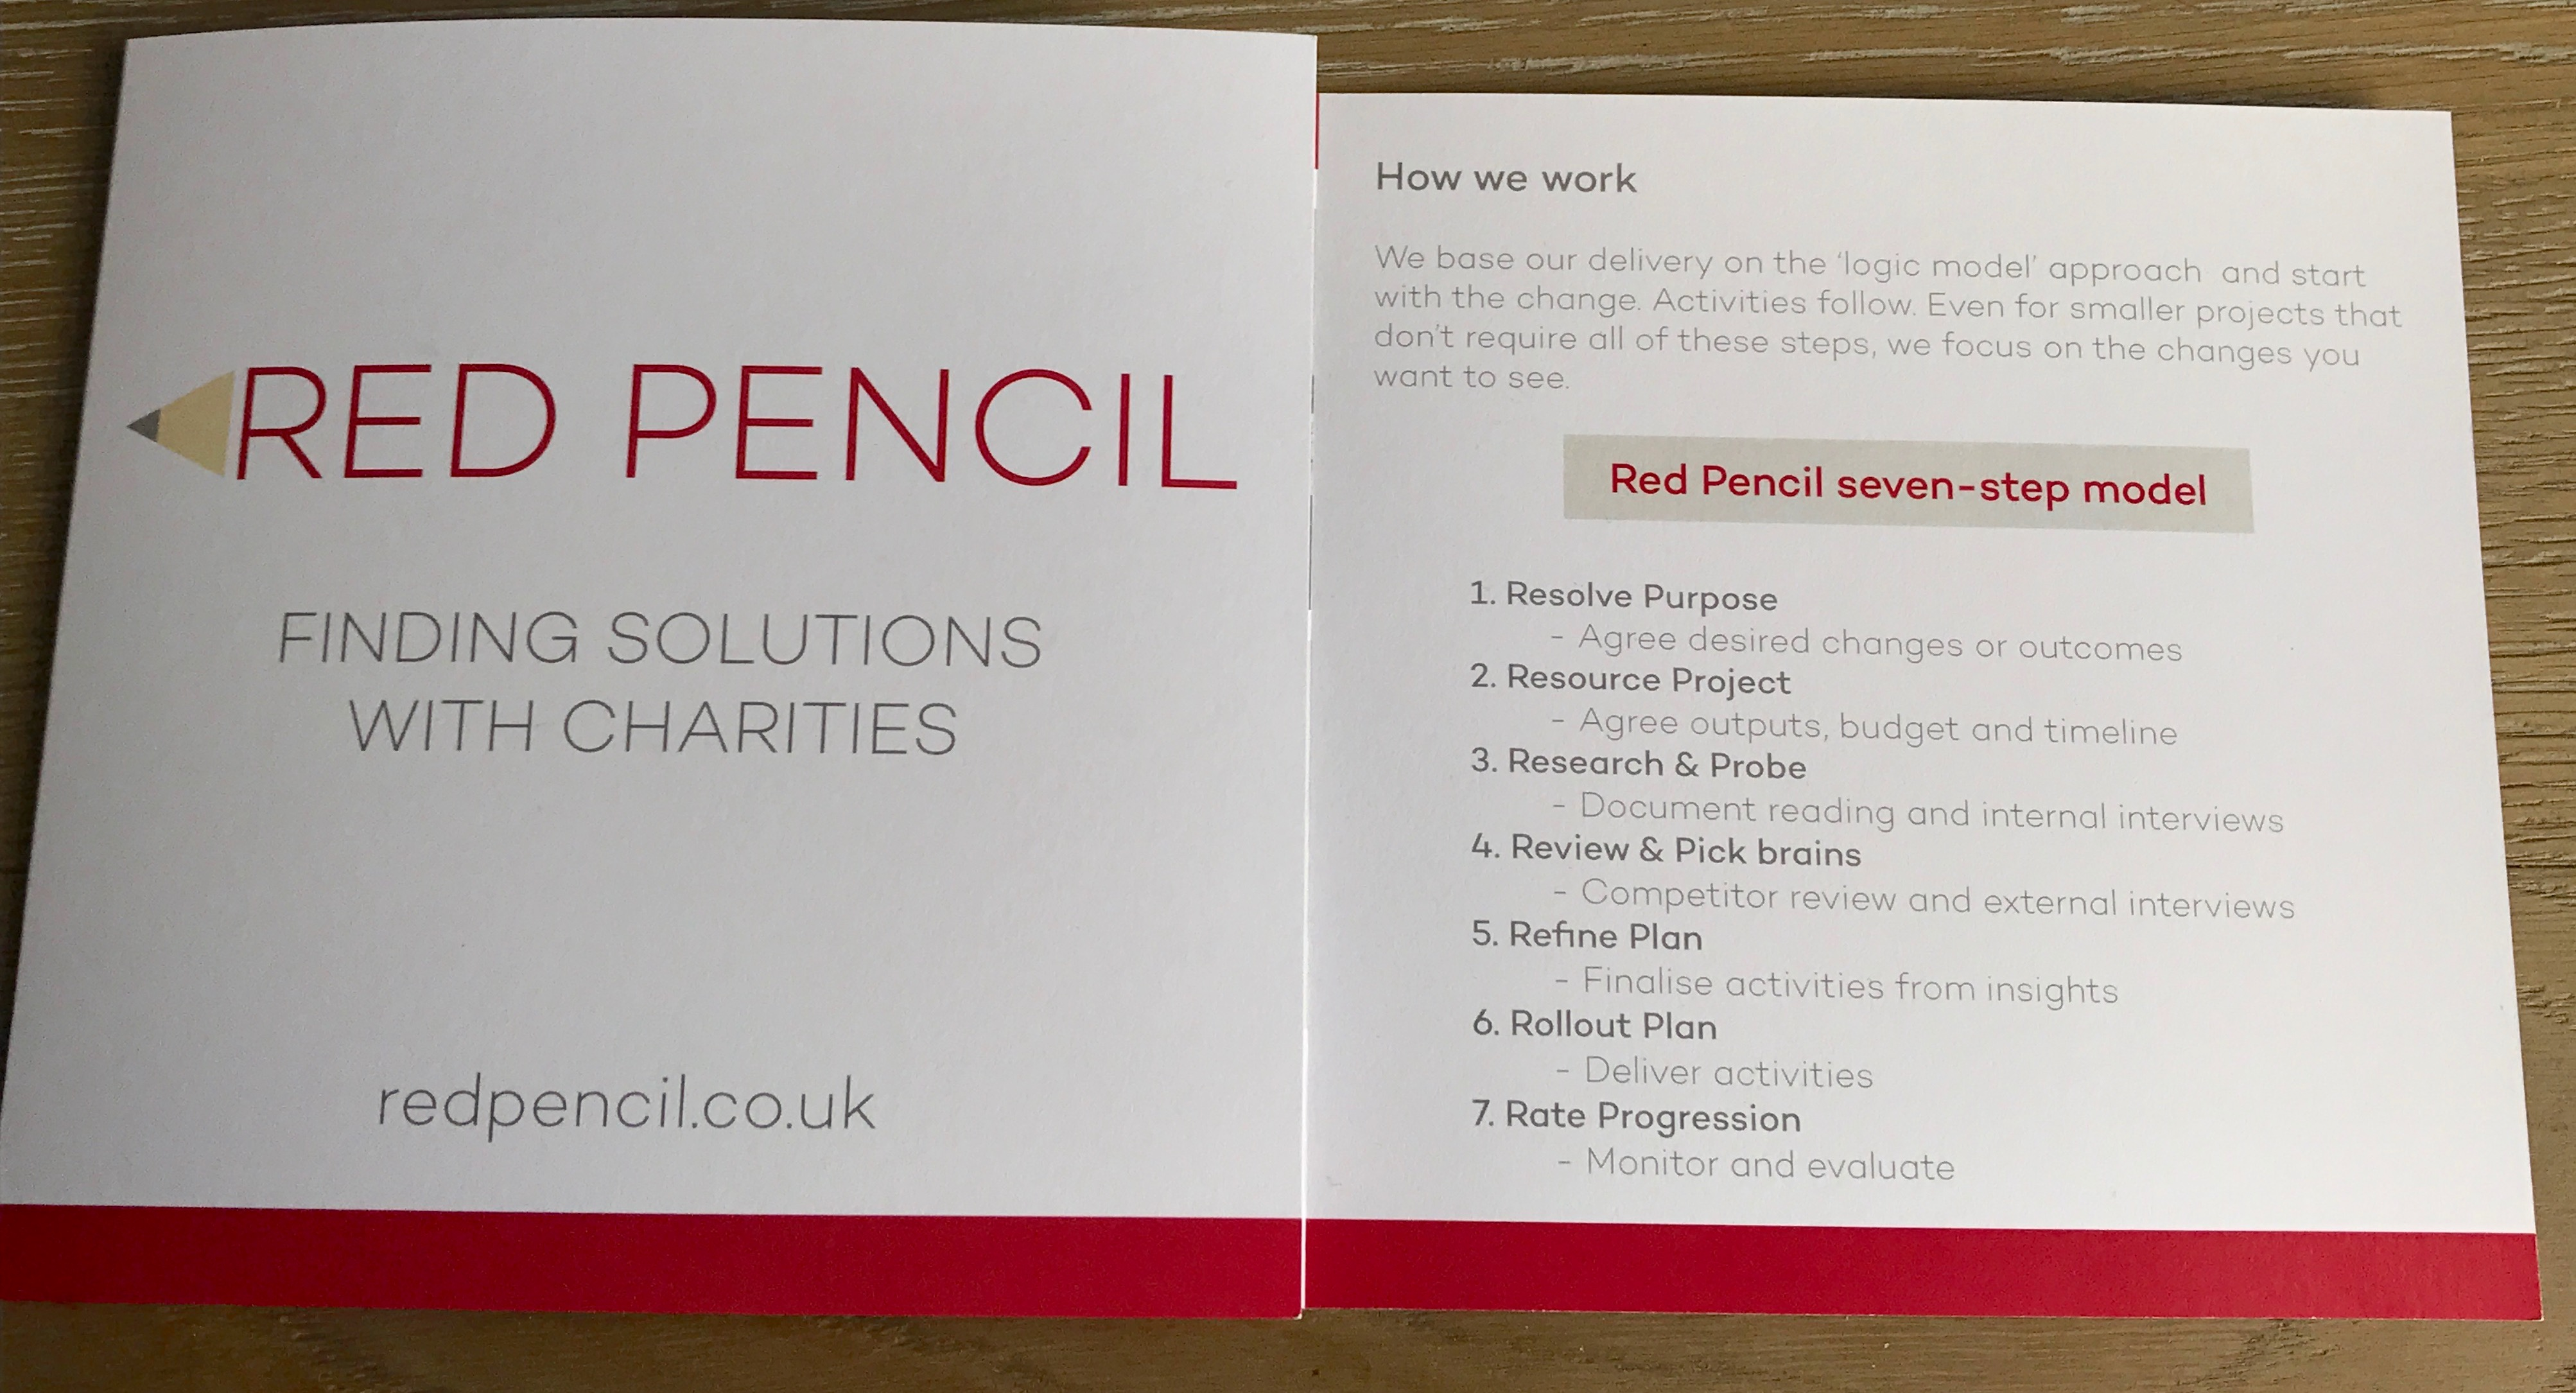 Our project management logic model - Red Pencil